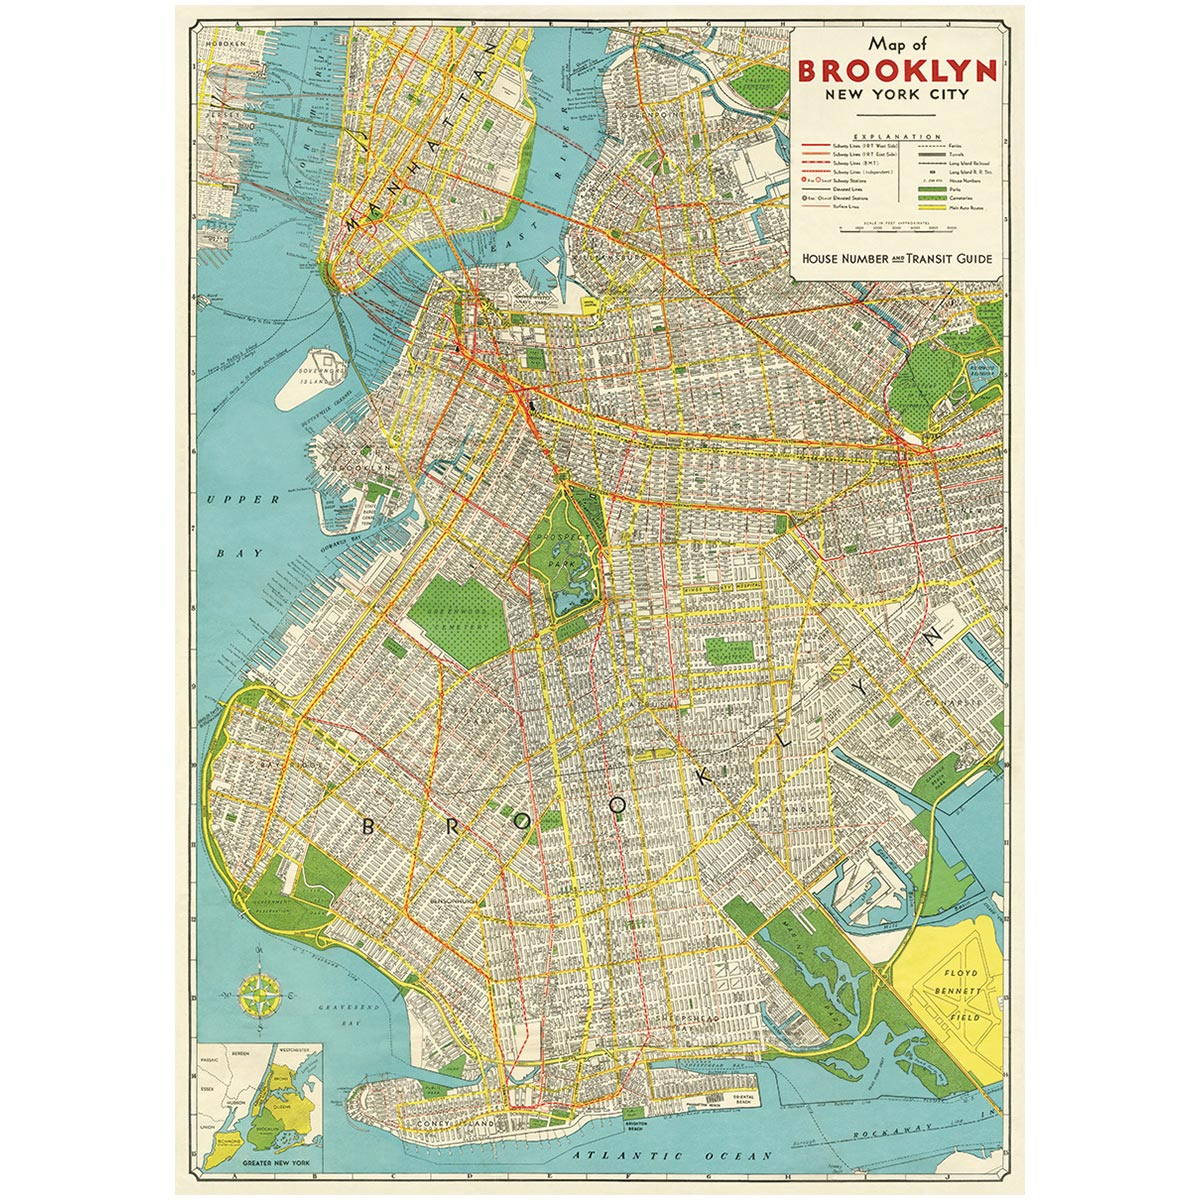 Brooklyn New York Map Poster Vintage Style on los angeles map, hells kitchen map, queens map, bronx map, park slope map, bensonhurst map, yankee stadium map, crown heights map, grand central station map, manhattan map, new york map, las vegas map, prospect park zoo map, harlem map, greenwich village map, nyc map, long island map, new paltz map, ny county map, white plains map,